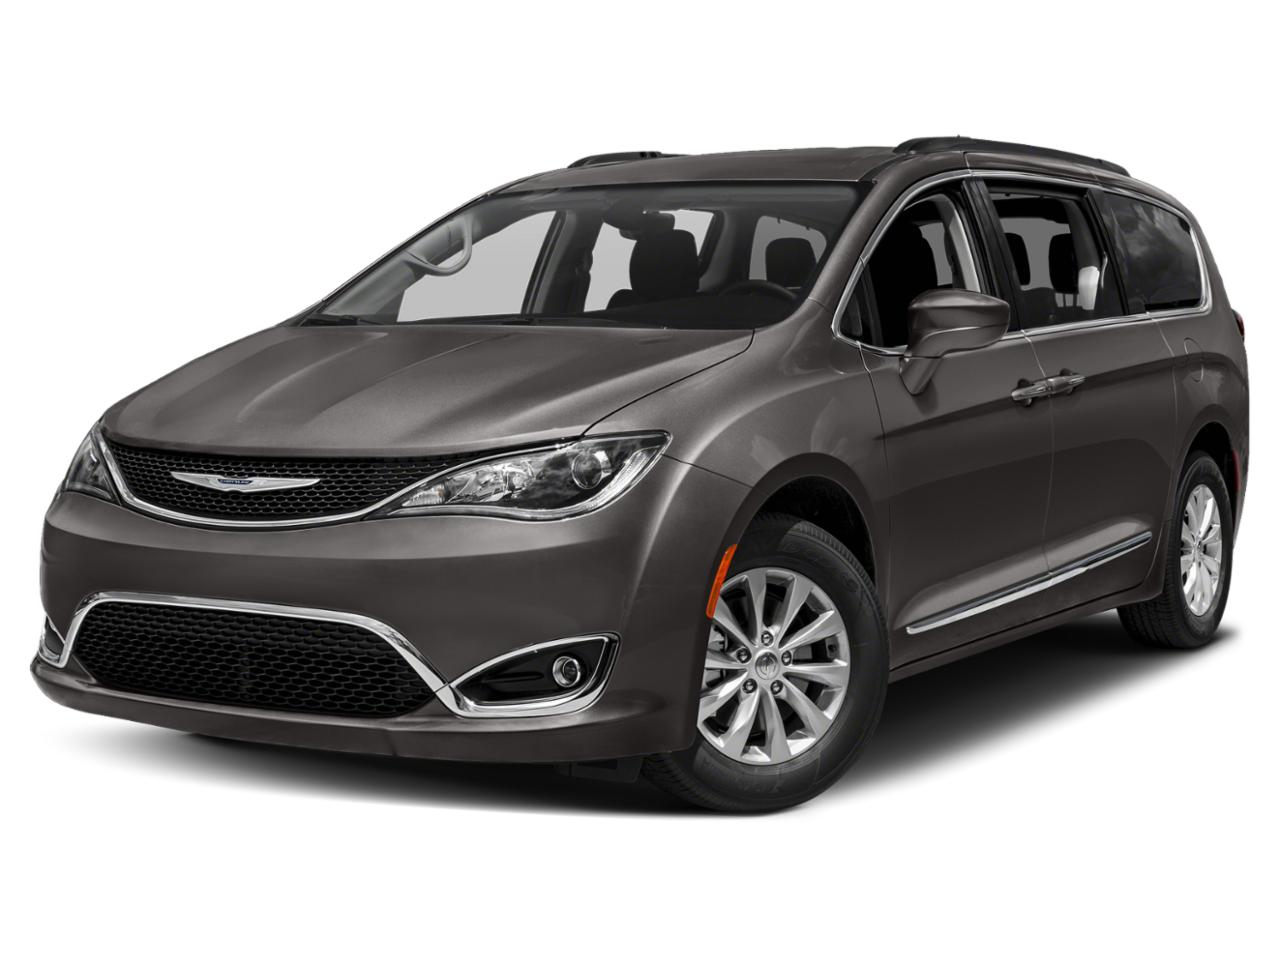 2019 Chrysler Pacifica Vehicle Photo in COLMA, CA 94014-3284